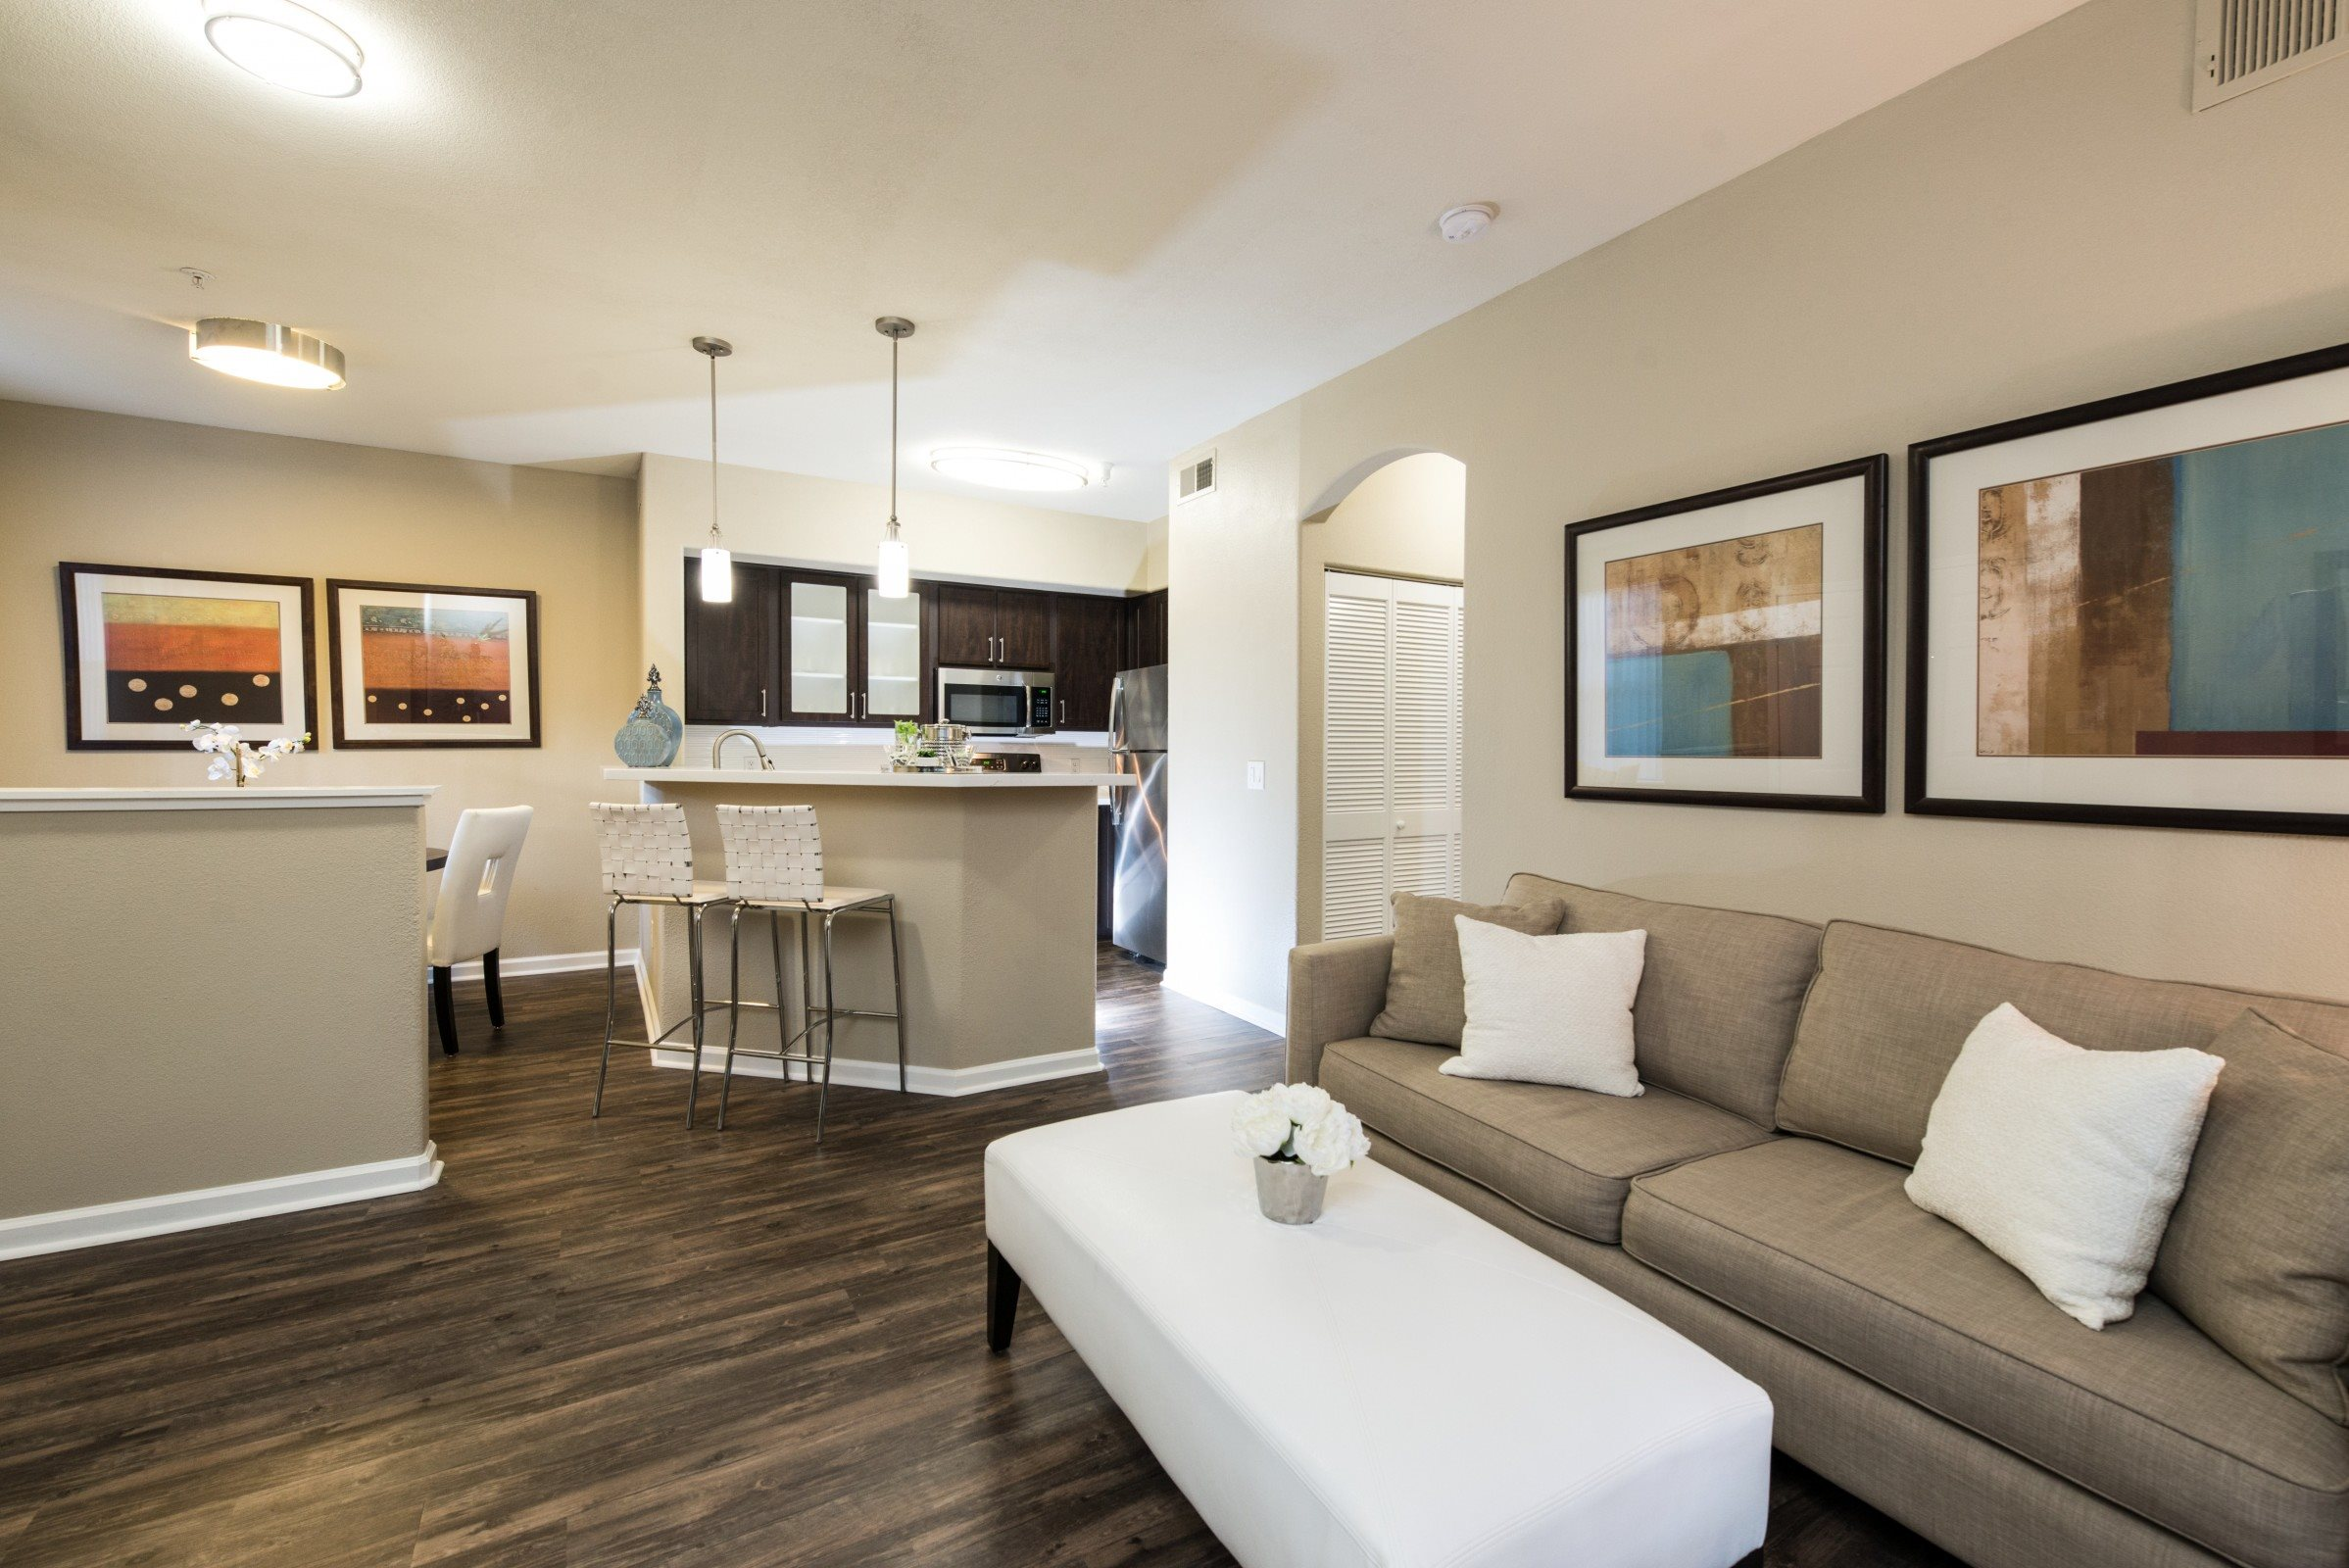 Luxurious And Beautiful interiors at Renaissance Apartment Homes, Santa Rosa, CA